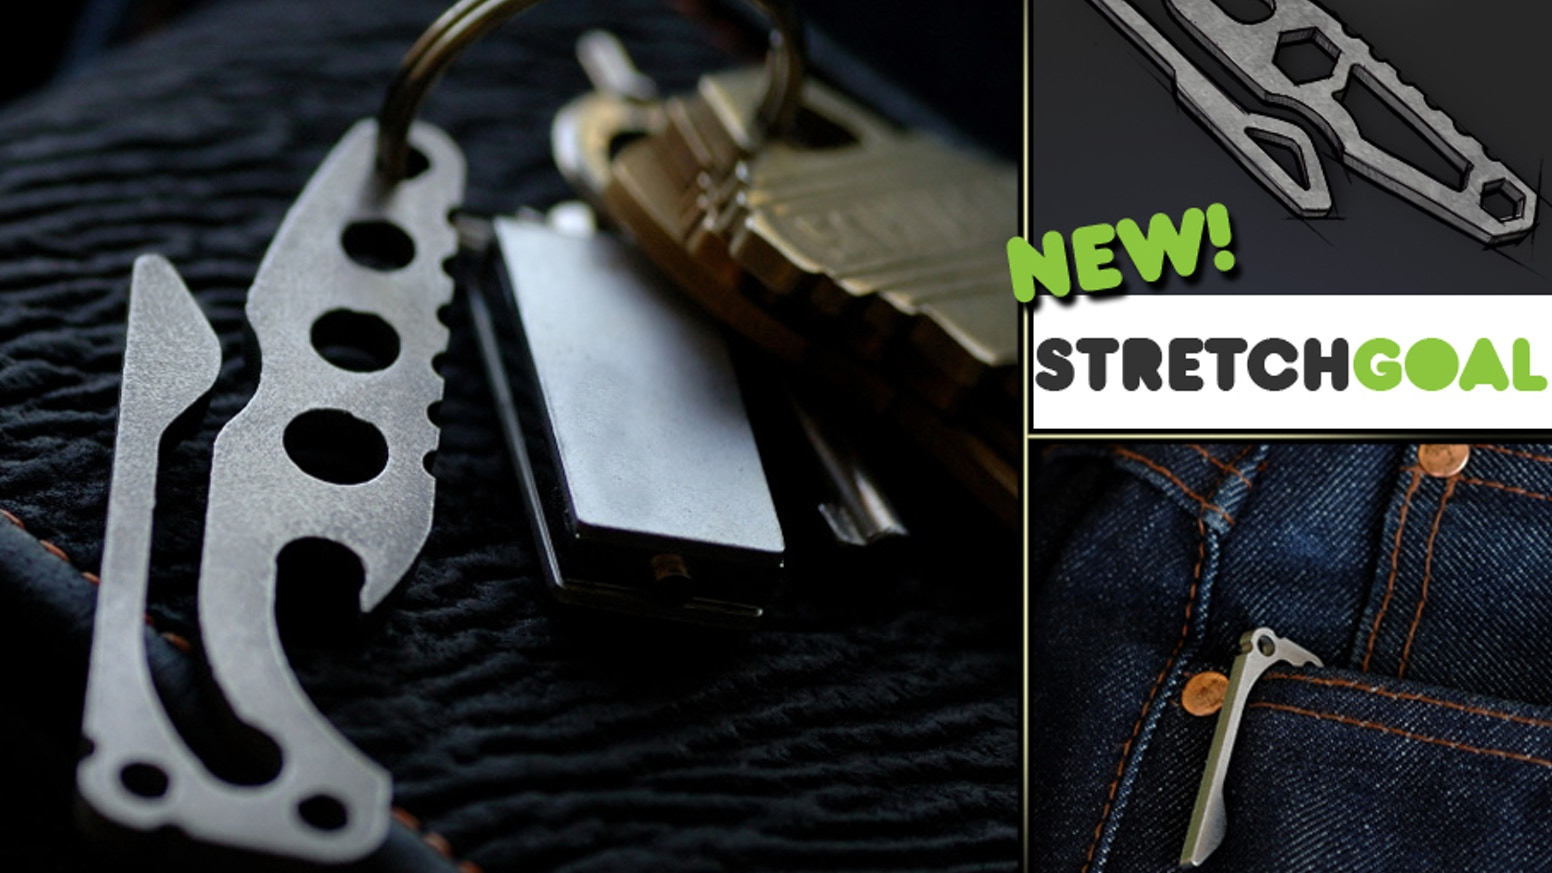 The Pickpocket is a combined bottle opener/pocketclip that allows you to hang your keys in a pocket or from a beltloop.